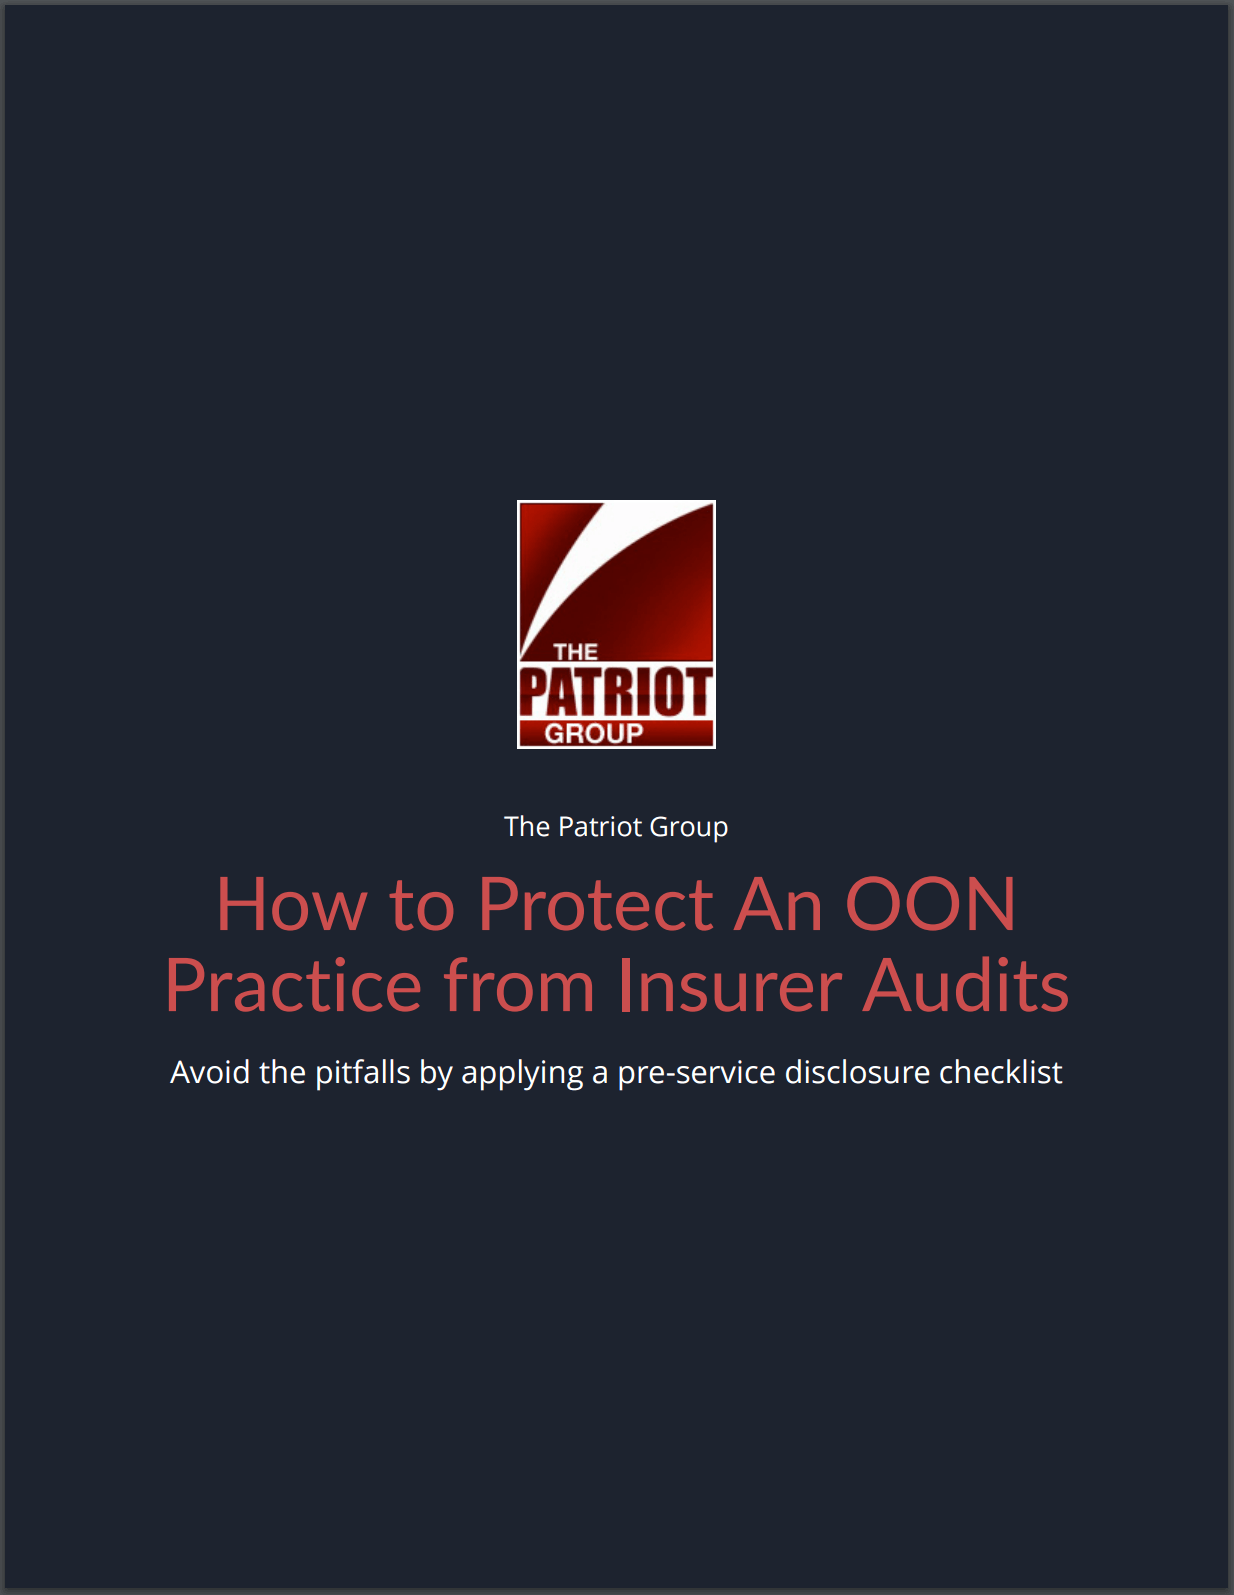 How To Protect Your Out-of-Network Practice from Insurer Audits